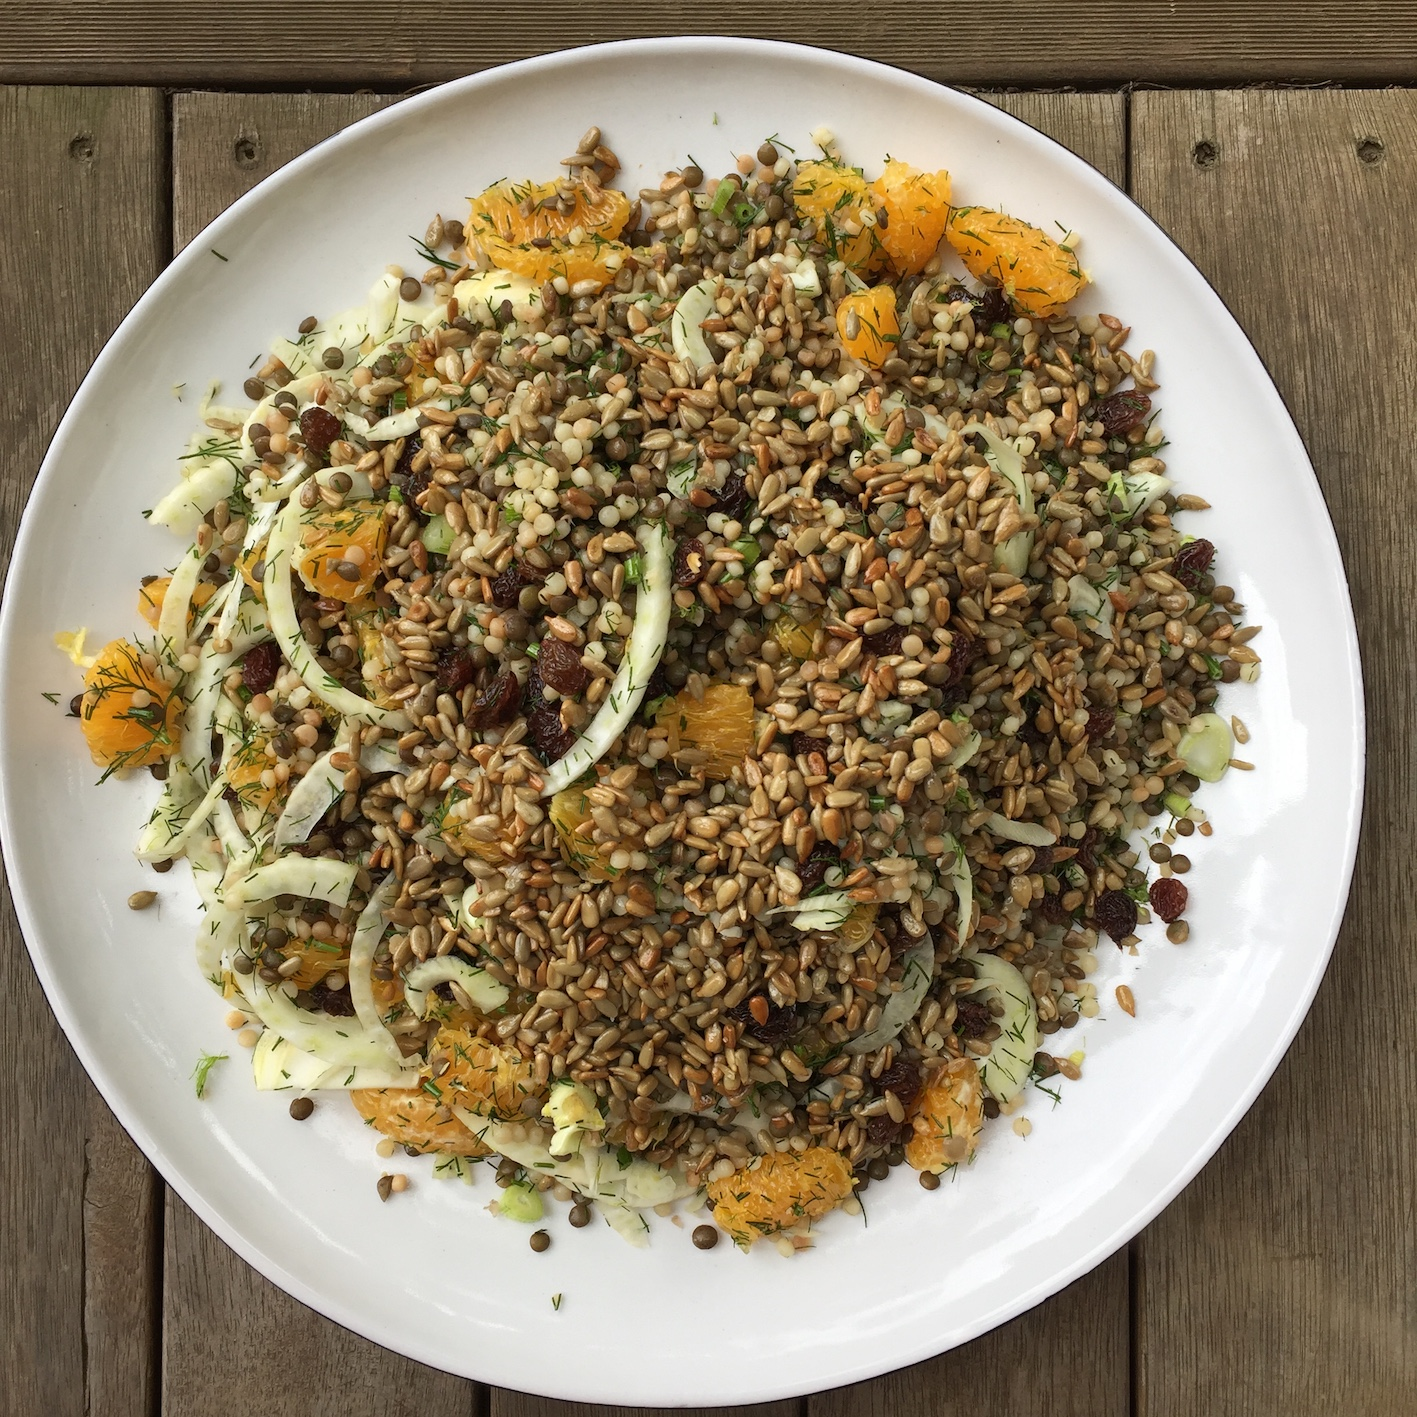 A delicious salad with pearl cous cous, lentils, orange, fennel, dill, sultanas and toasted sunflower seeds is sure to satisfy.